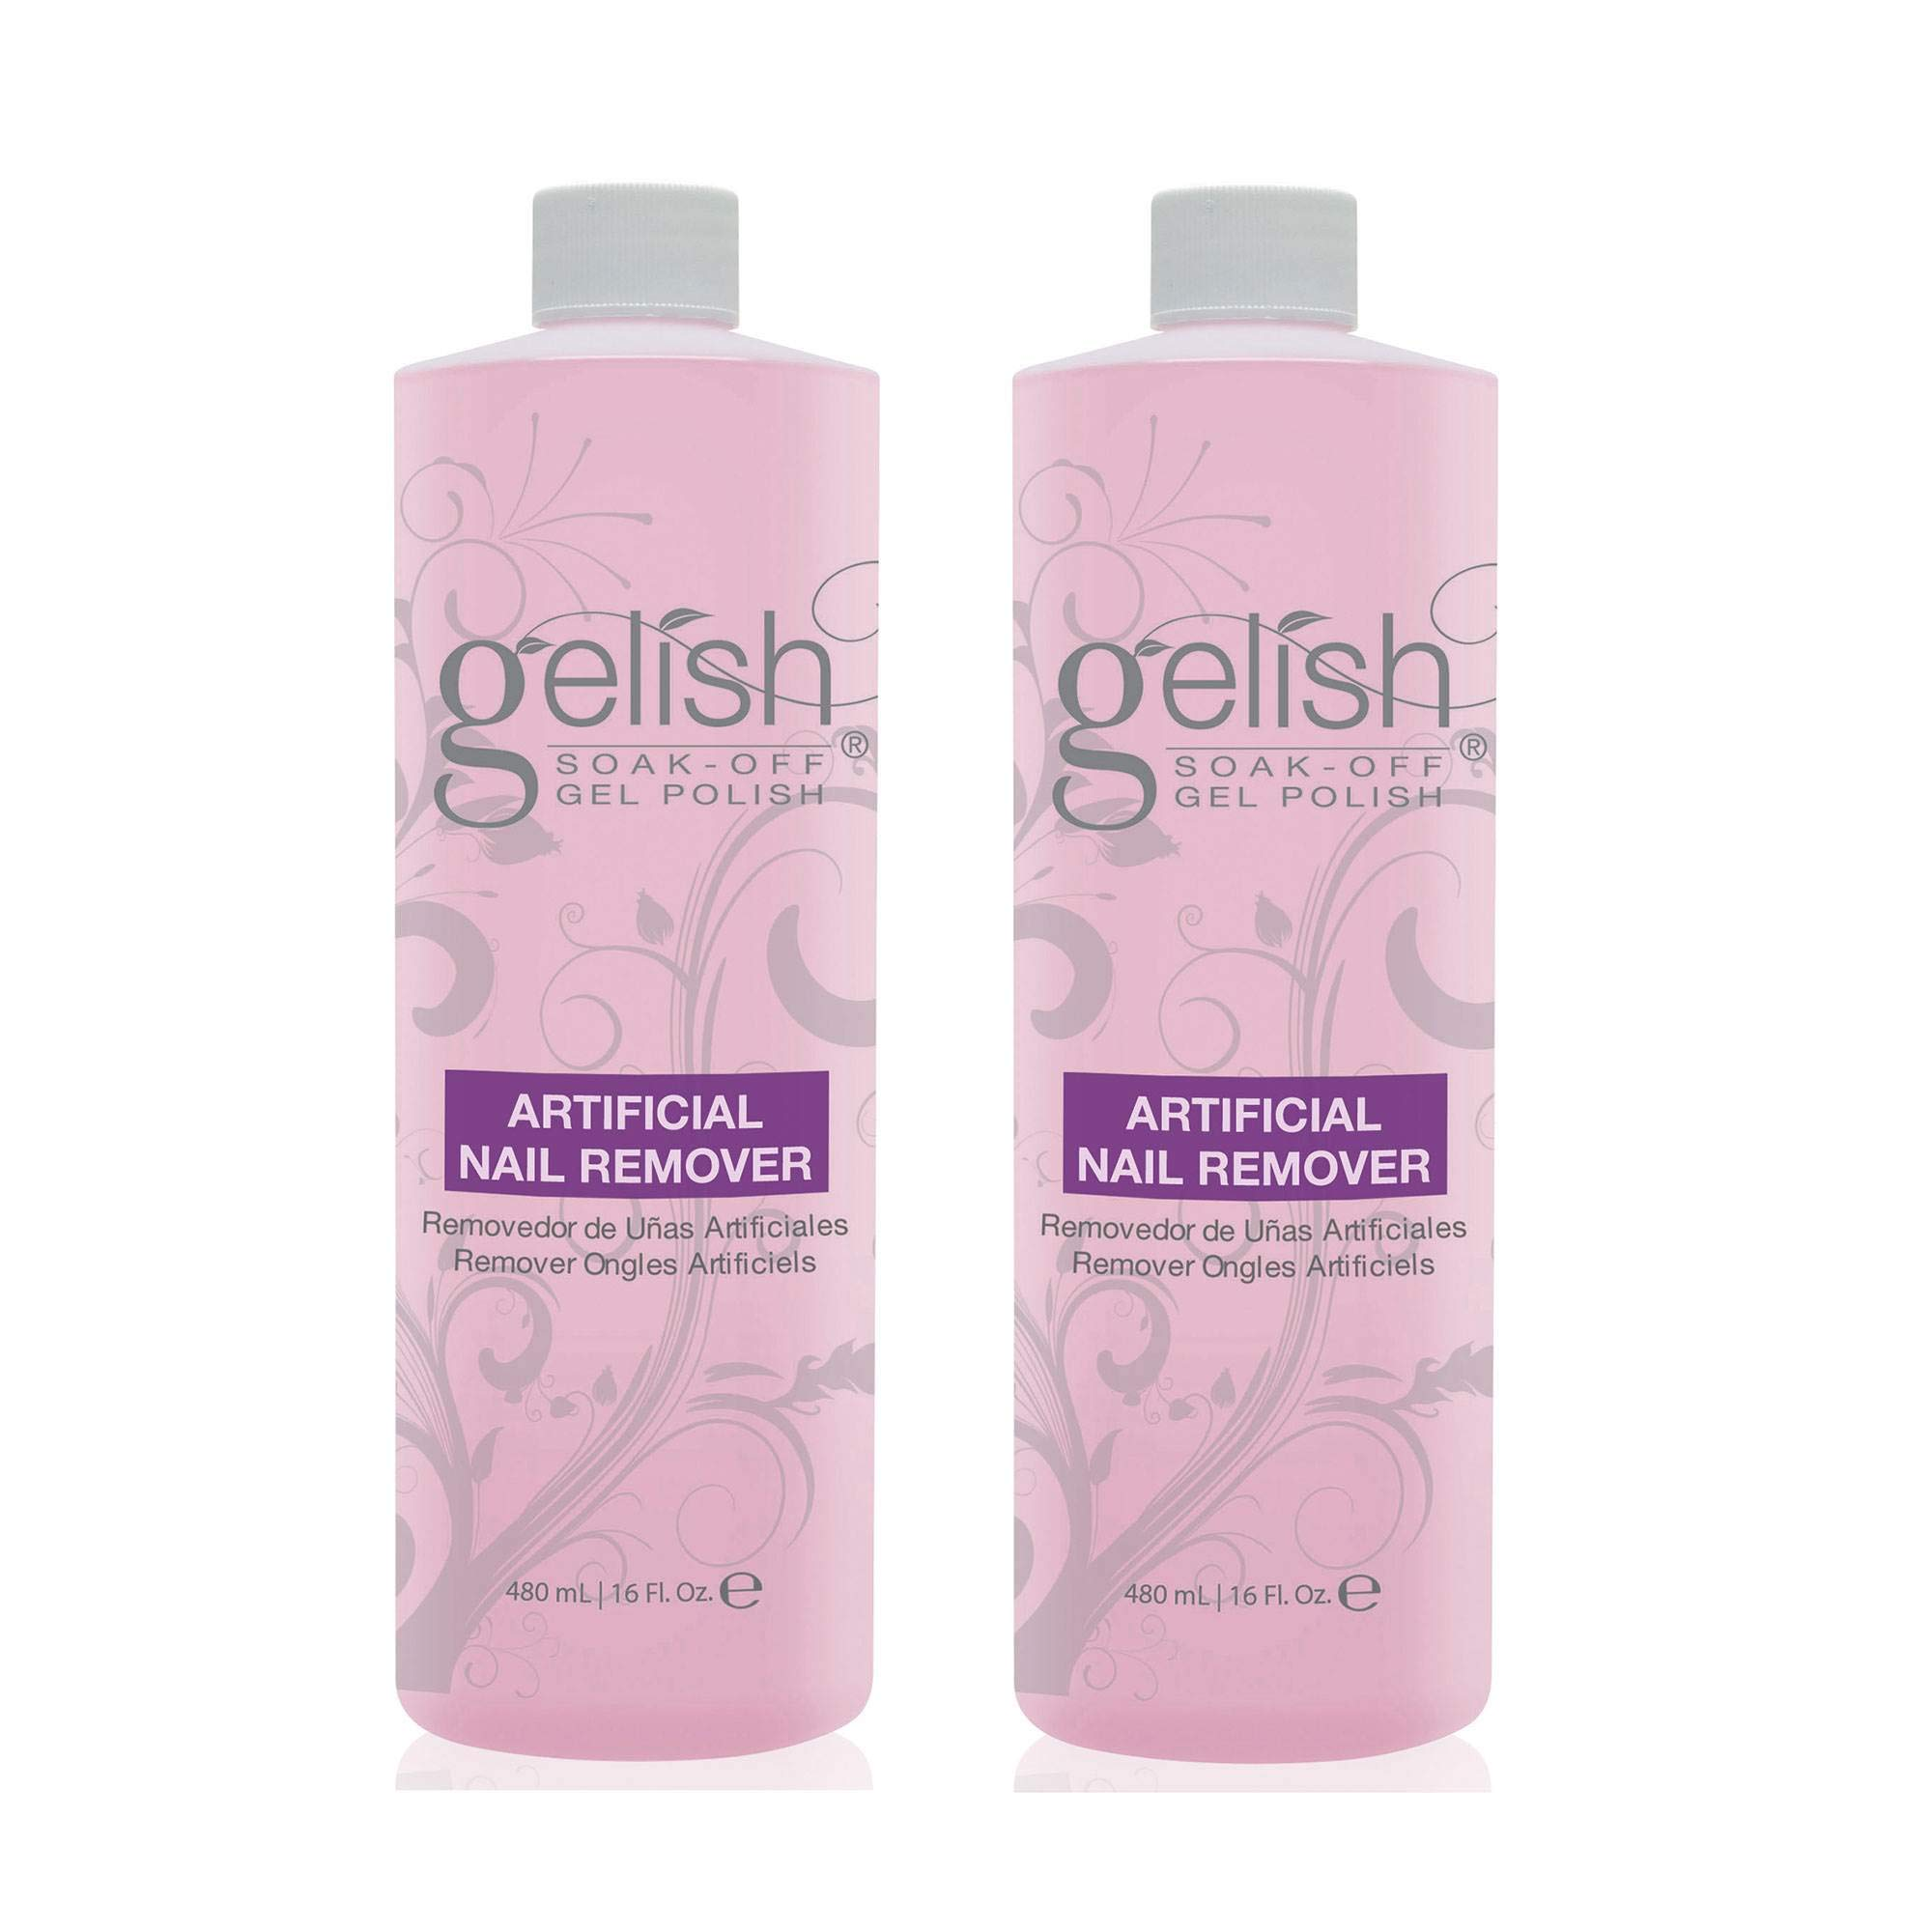 NEW Gelish Artificial Refill Soak Off Gel Nail Polish Remover 480mL (2 Pack) by Gelish